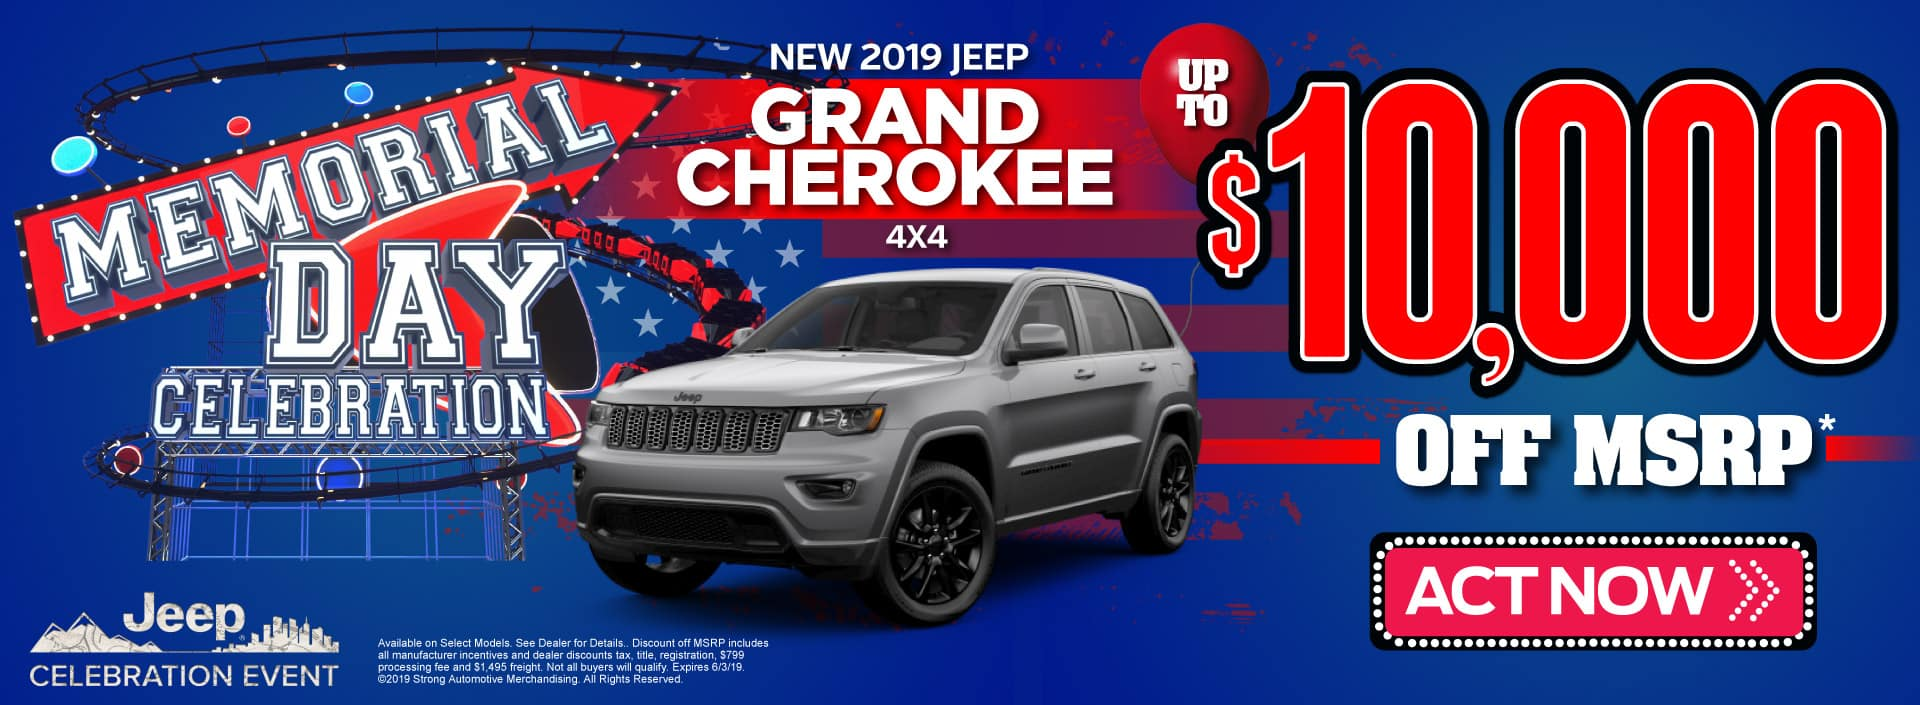 Safford Chrysler Dodge Jeep Ram Fiat Of Fredericksburg Cjdr